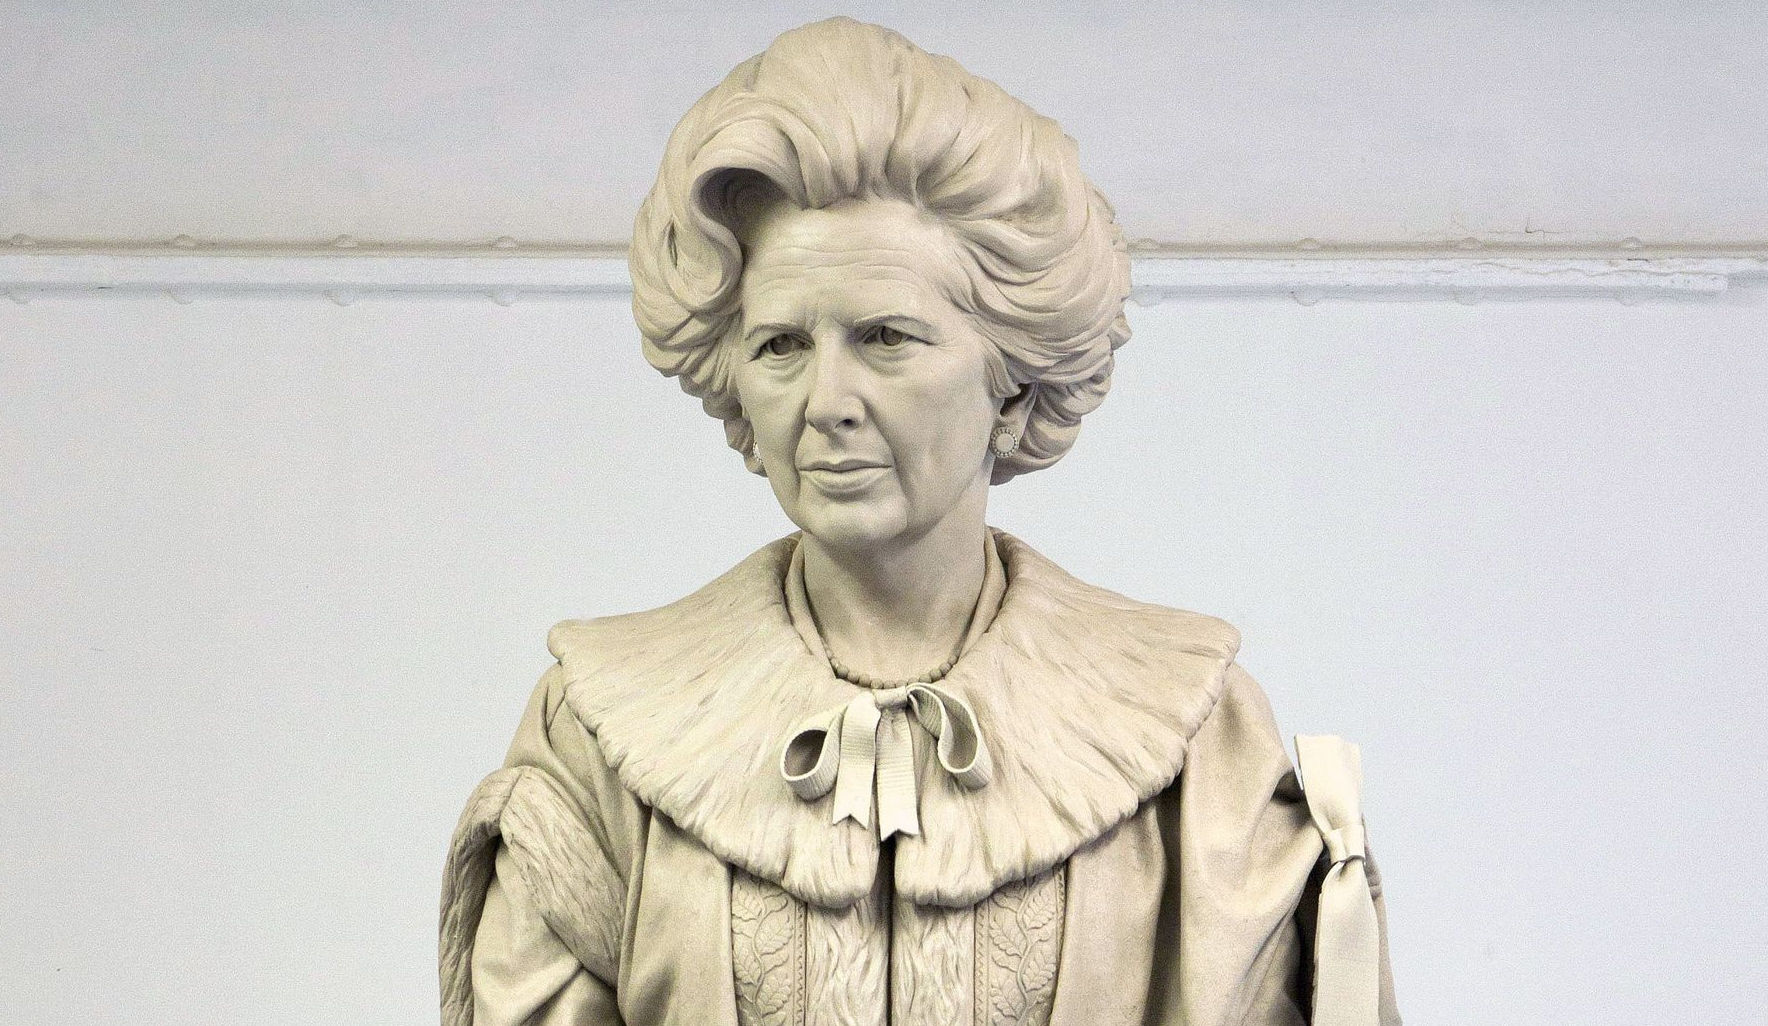 Sculptor Douglas Jennings has created a statue of Margaret Thatcher for Parliament Square, but it might not get there